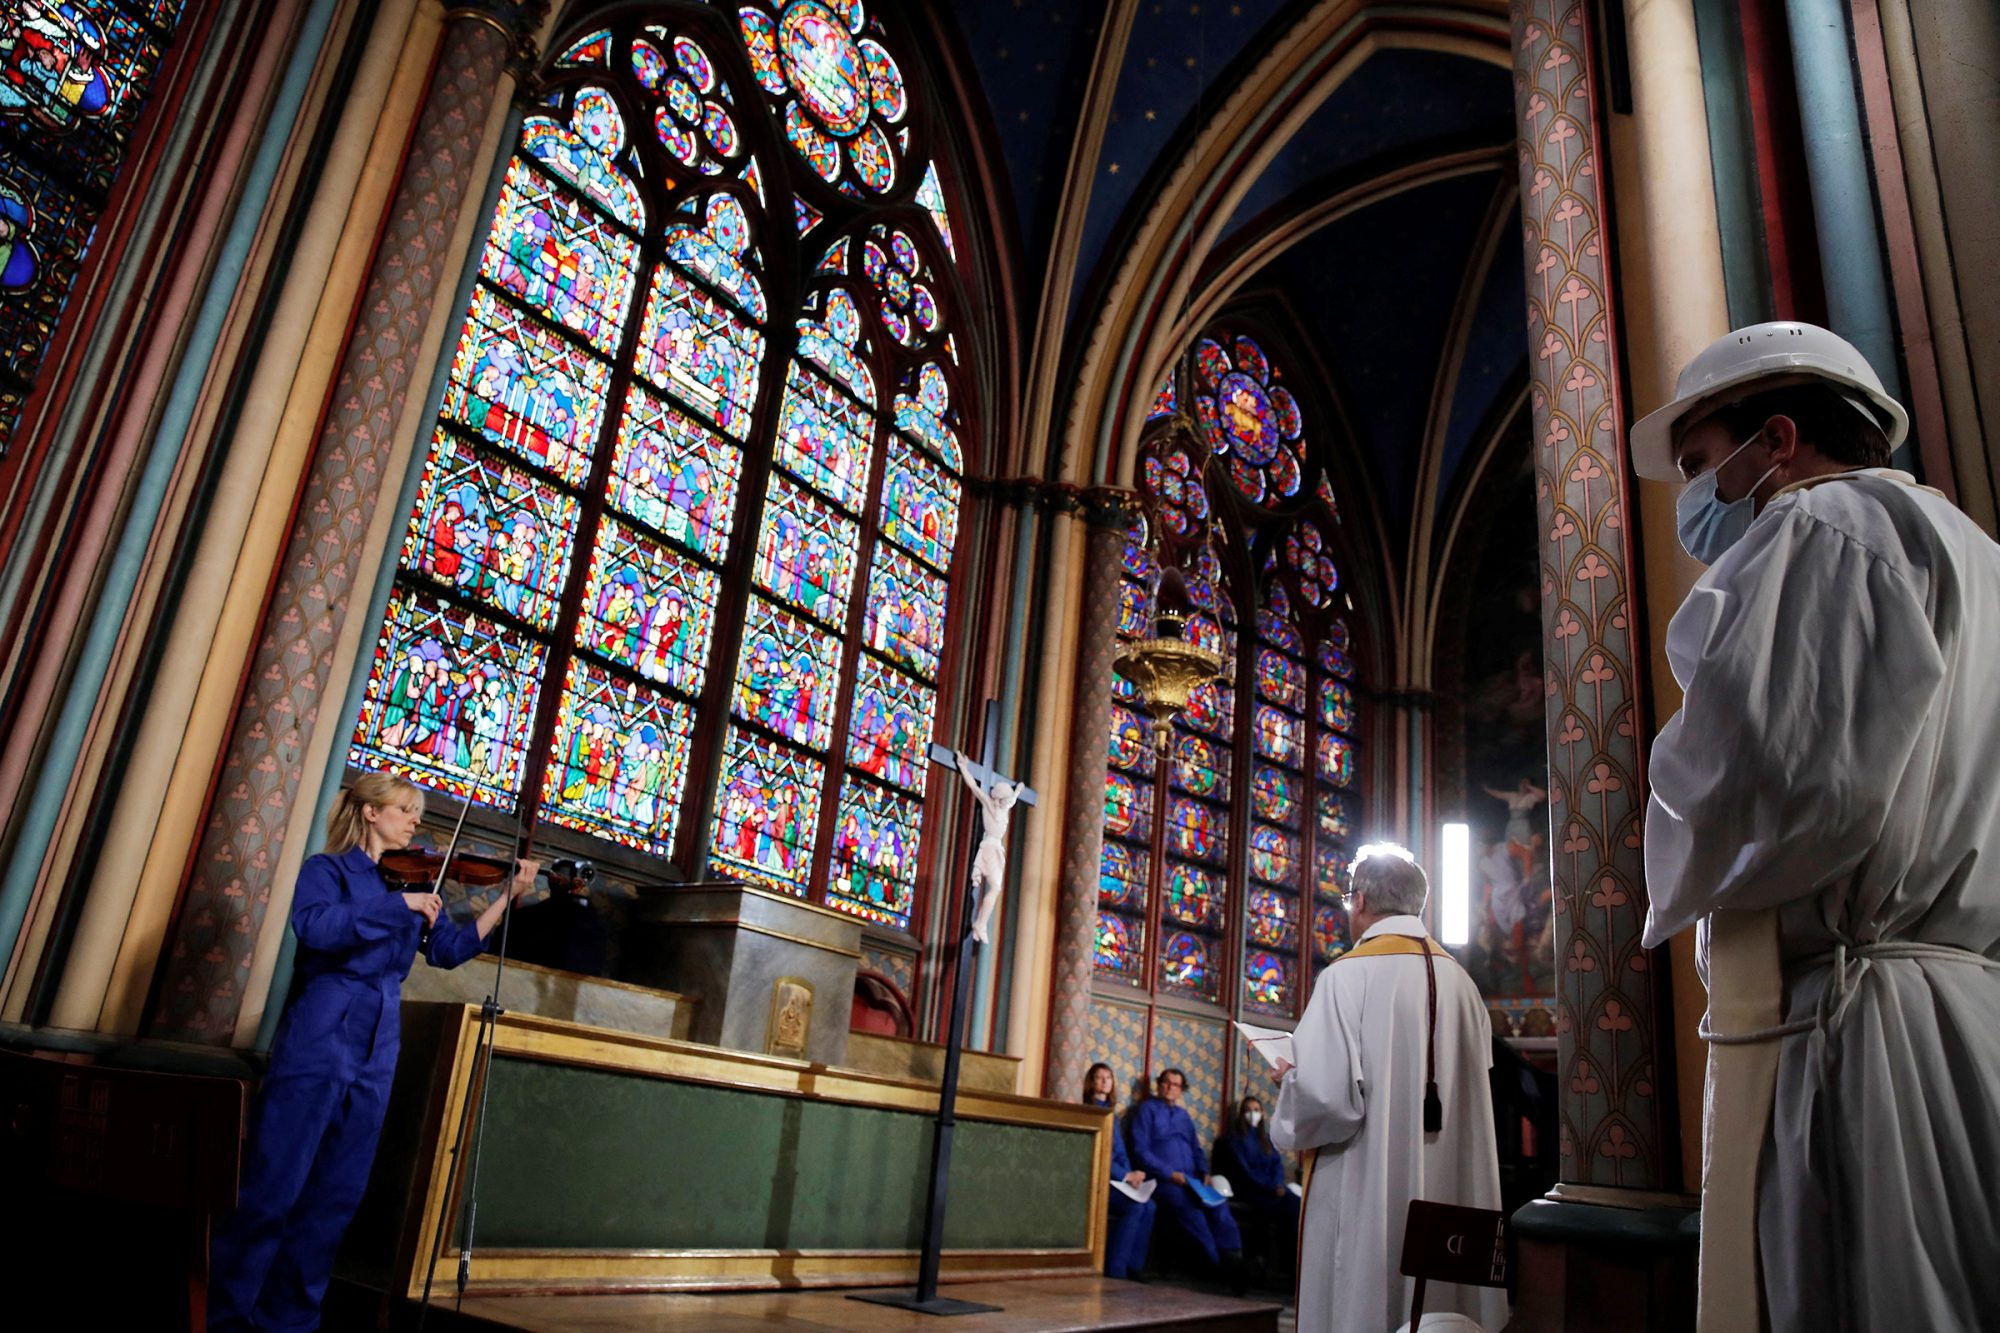 Notre Dame rector Patrick Chauvet (2ndR) attends a ceremony as part of Maundy Thursday, in Notre-Dame cathedral in Paris, on April 1, 2021, almost two years after a massive fire ravaged the Gothic cathedral